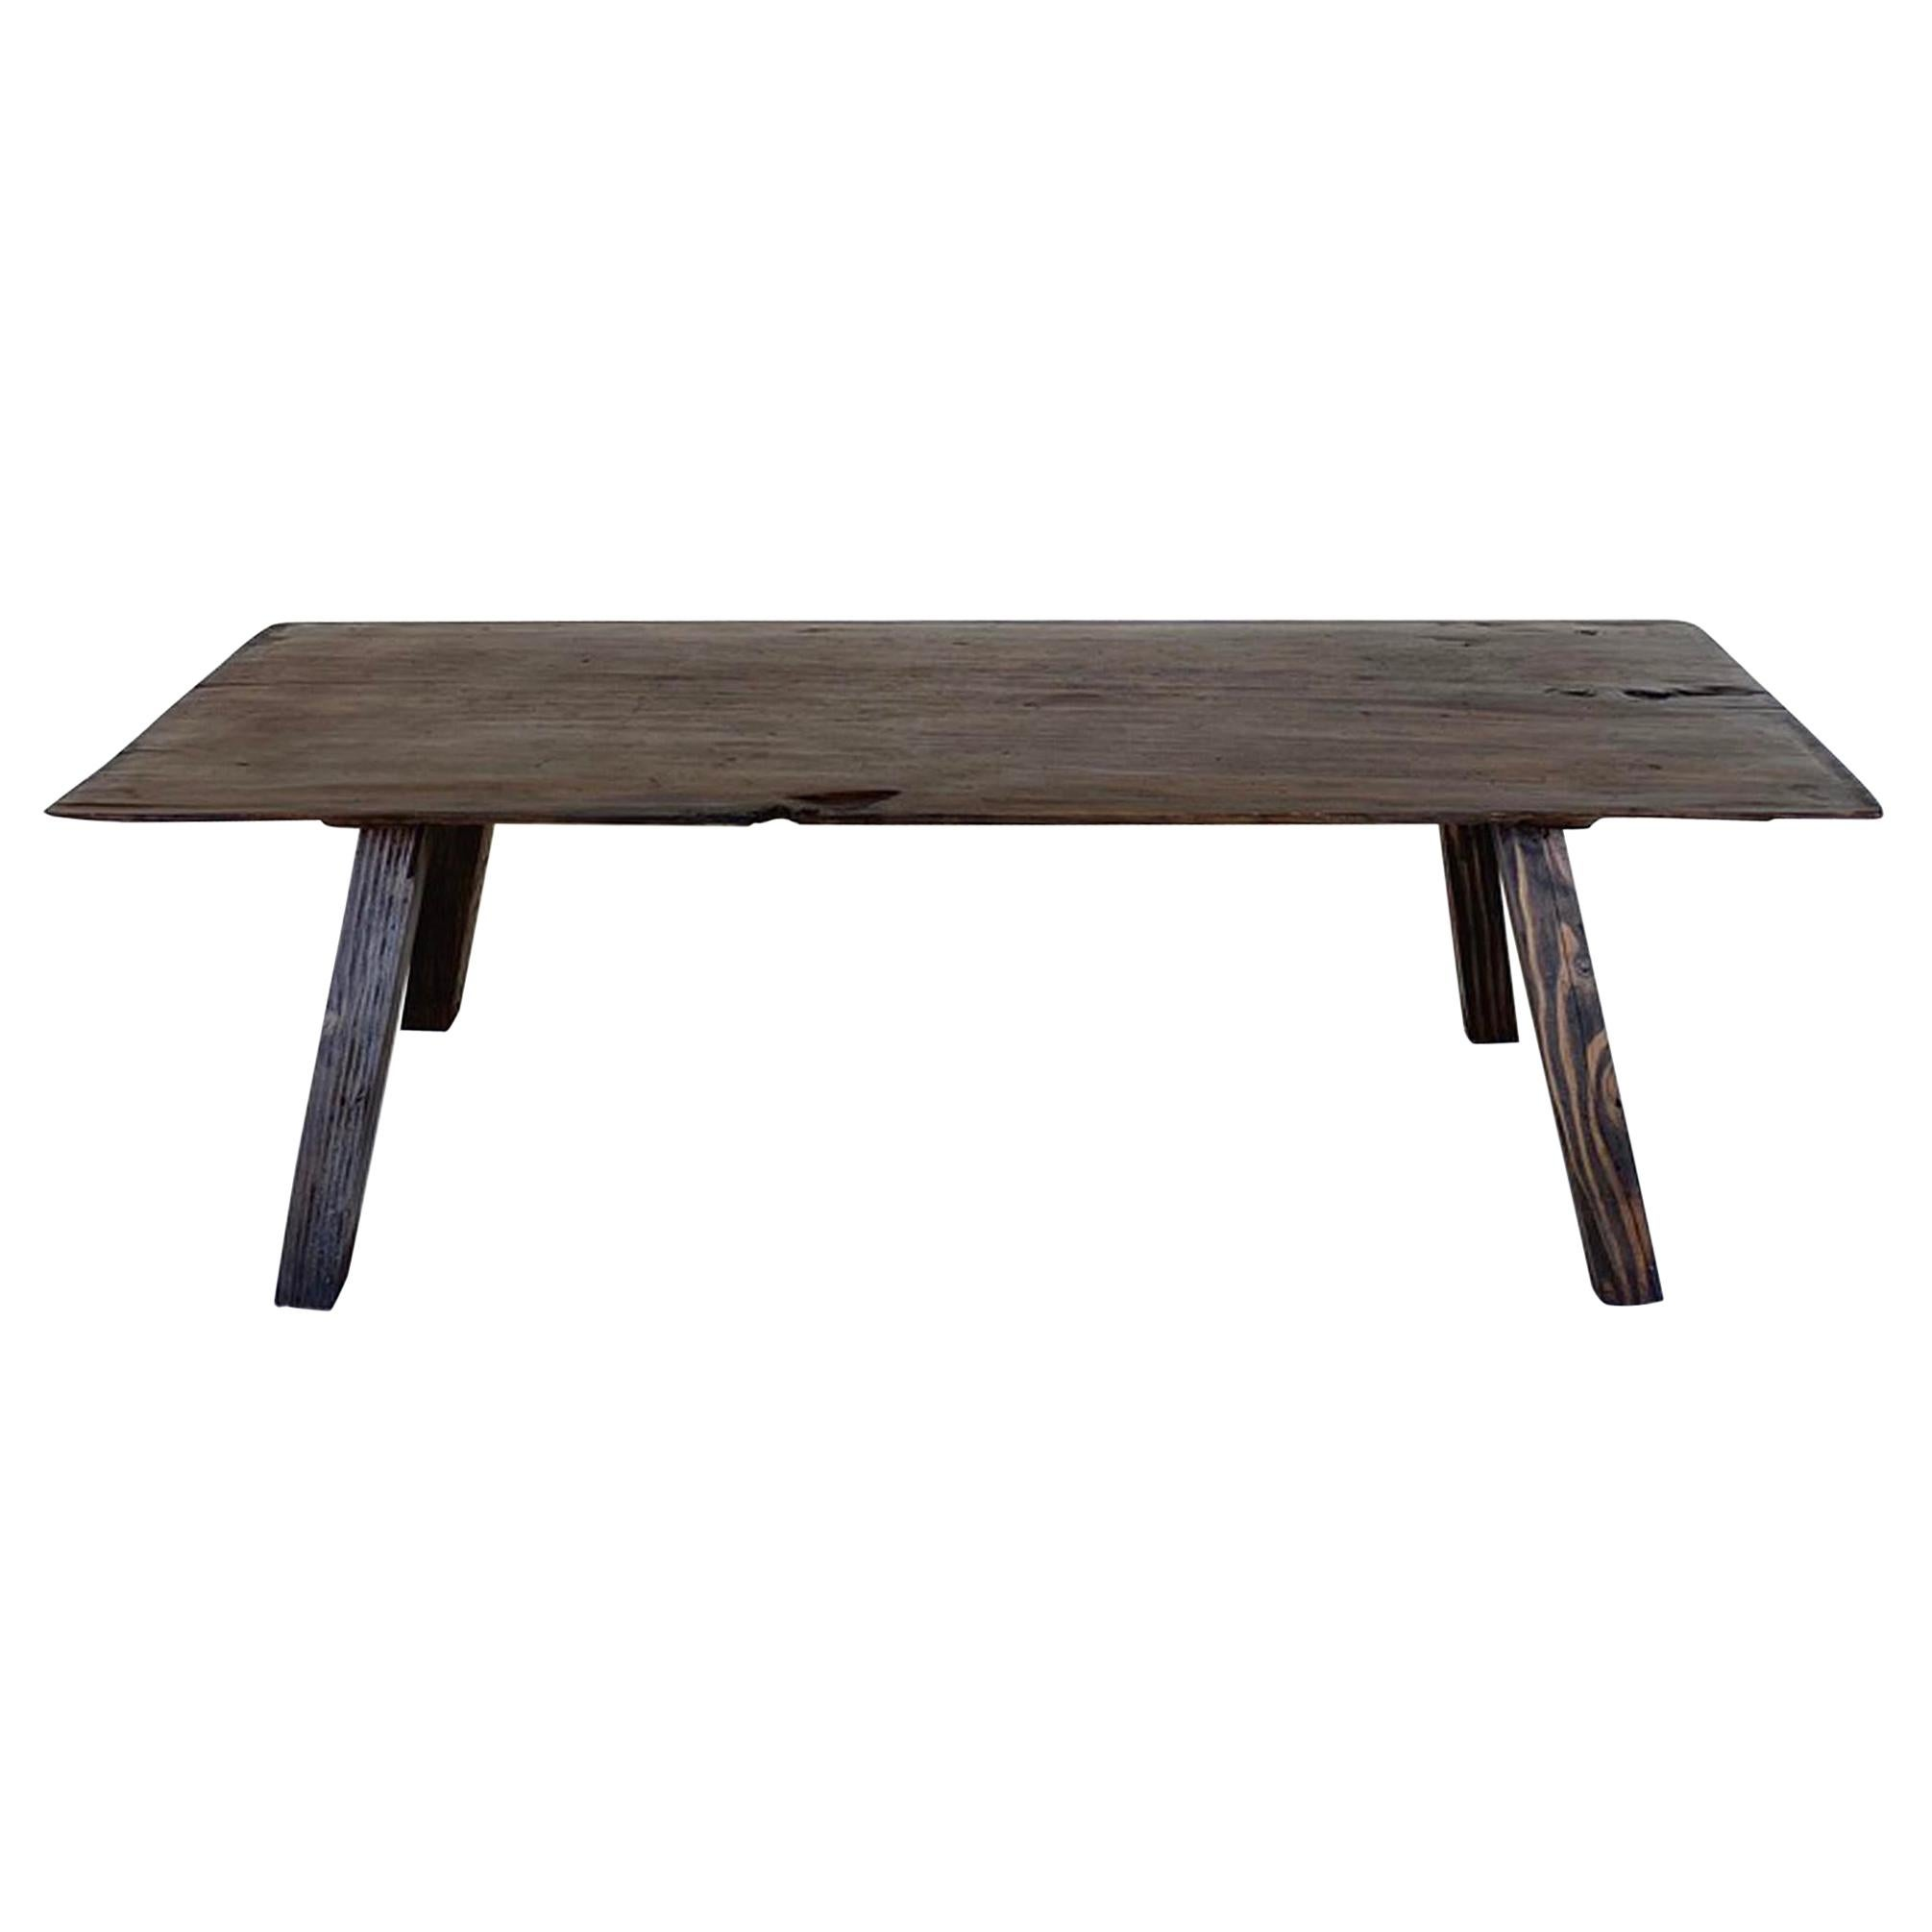 Rustic One Wide Board Coffee Table